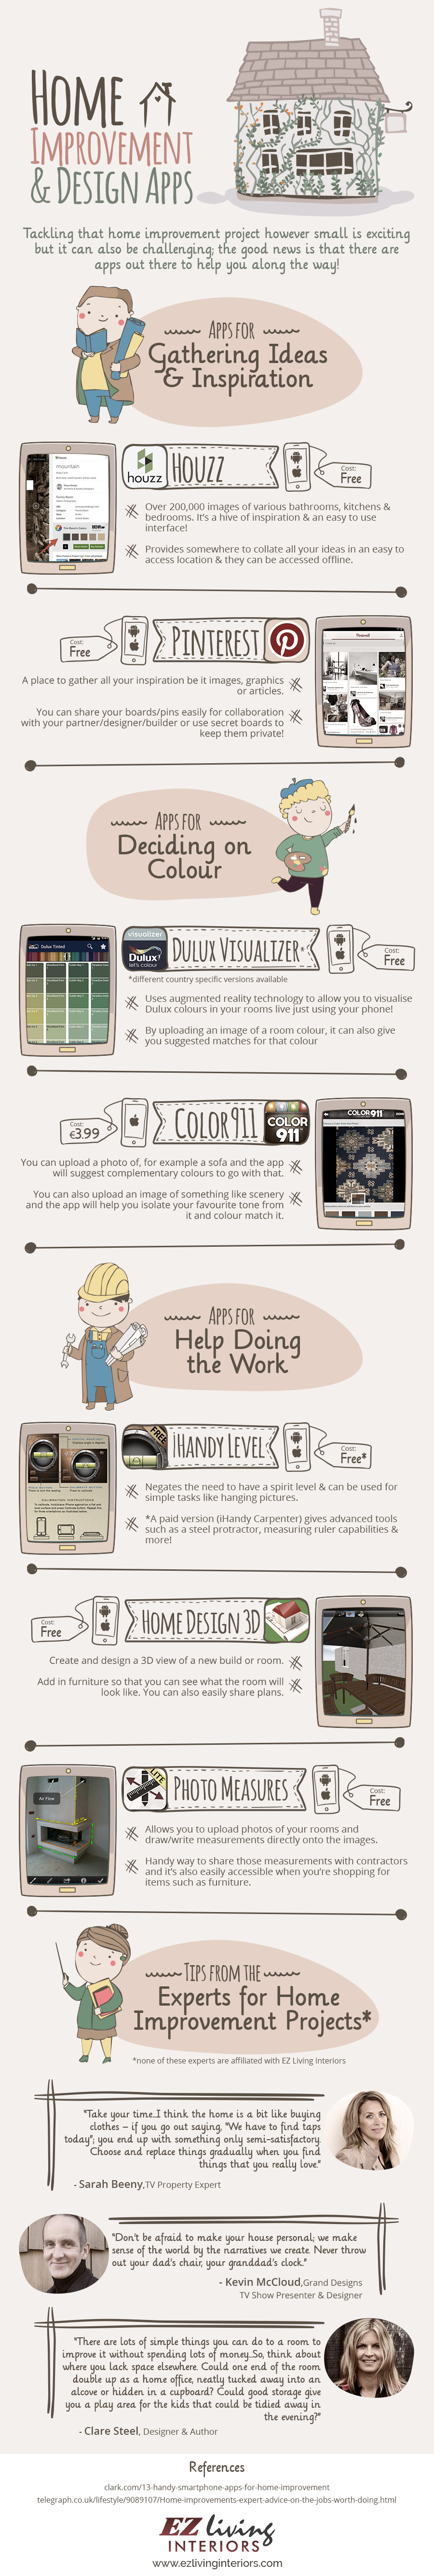 home-improvement-apps-infographic